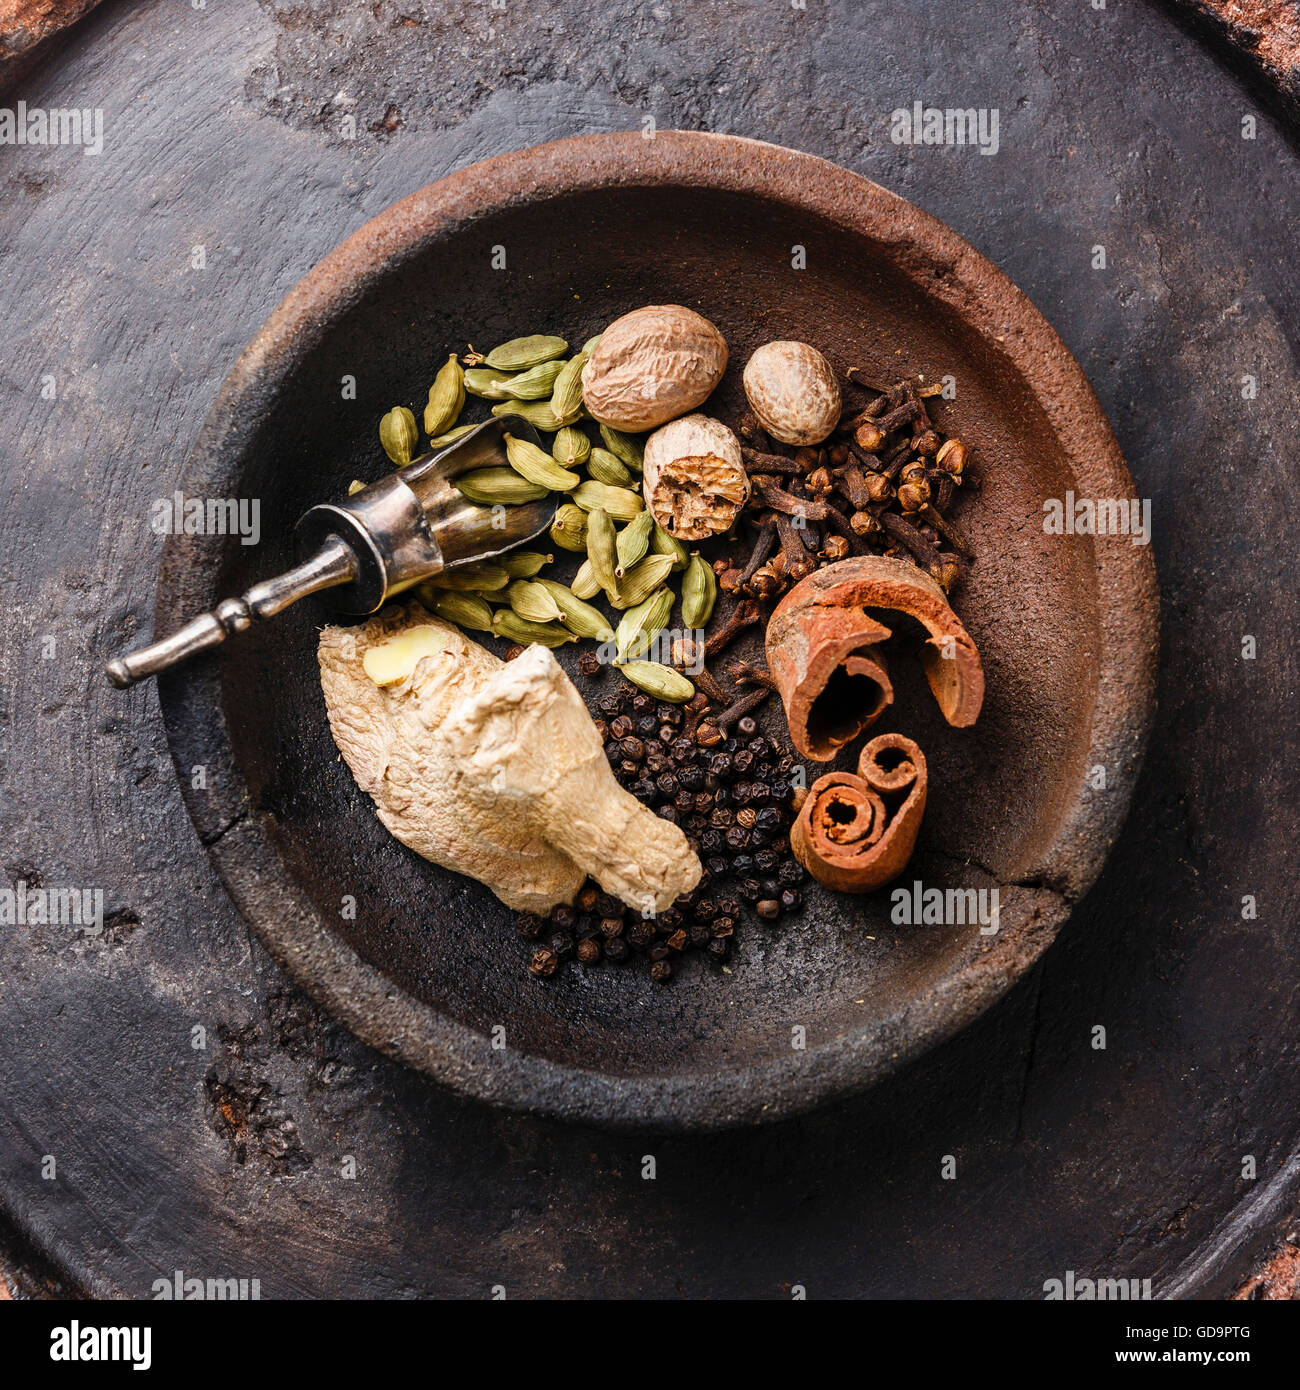 Spices Ingredients for Indian masala tea on dark background - Stock Image